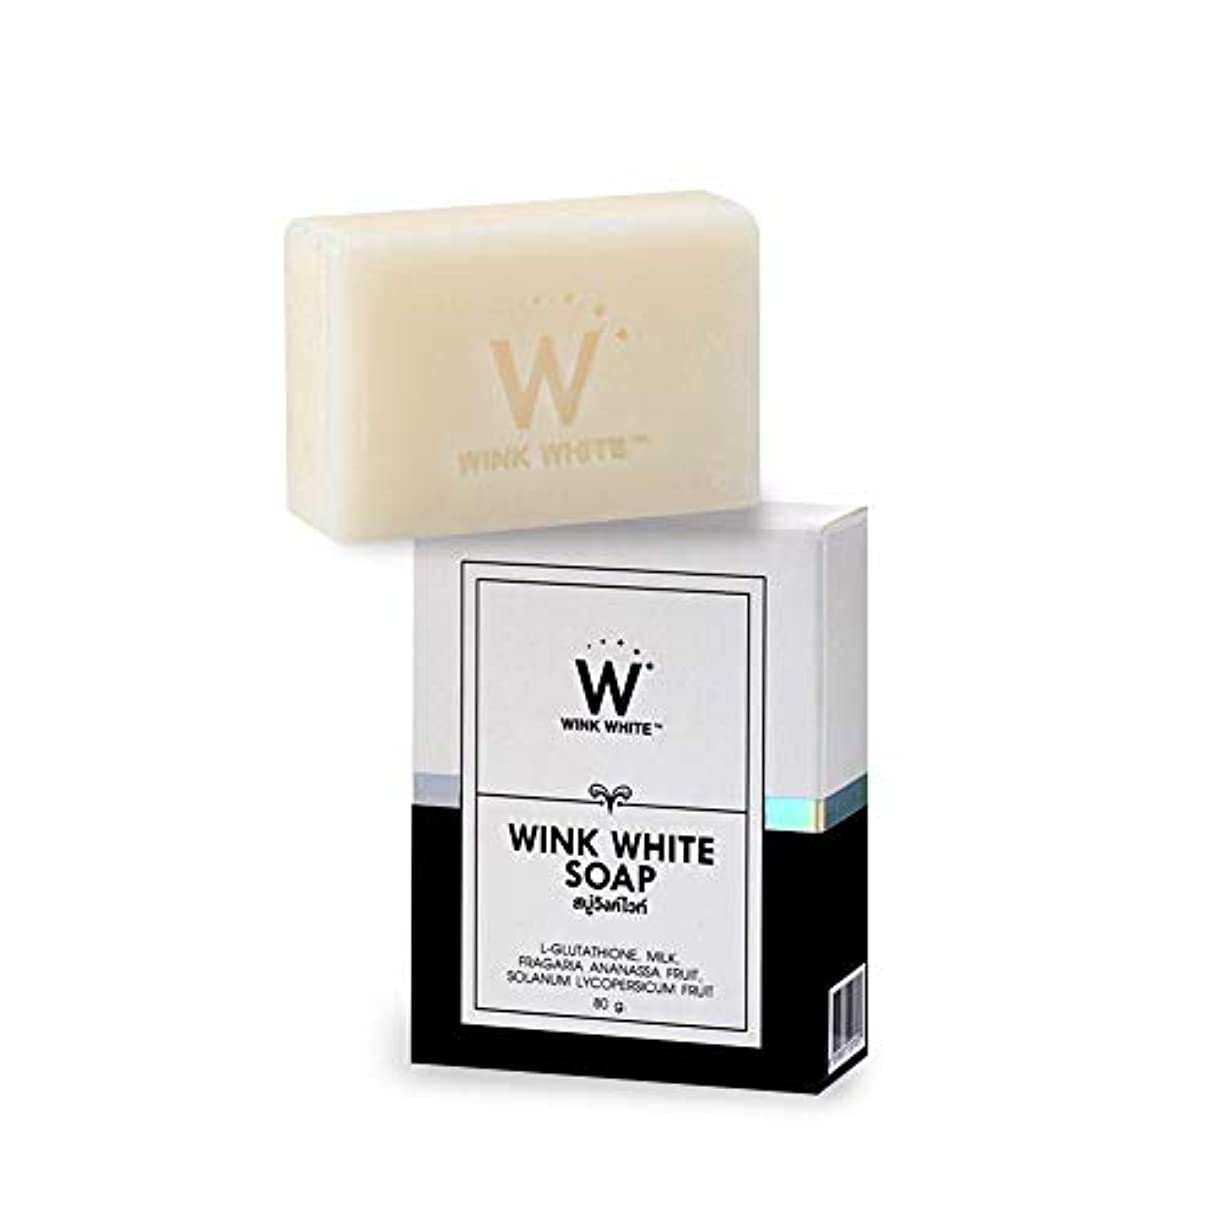 共和国テープ代数Mangos Teen White Soap Base Wink White Soap Gluta Pure Skin Body Whitening Strawberry for Whitening Skin All Natural...